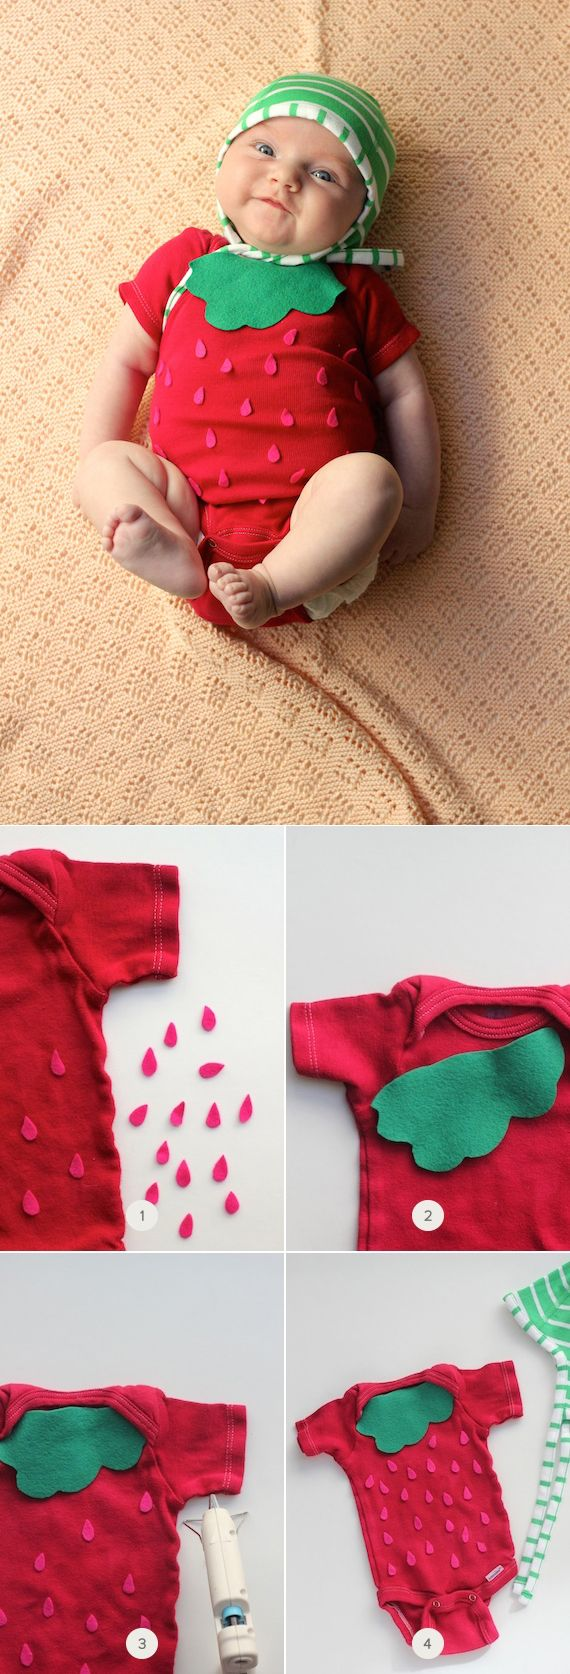 Celebrate baby's first Halloween with a DIY easy no-sew strawberry Halloween costume.